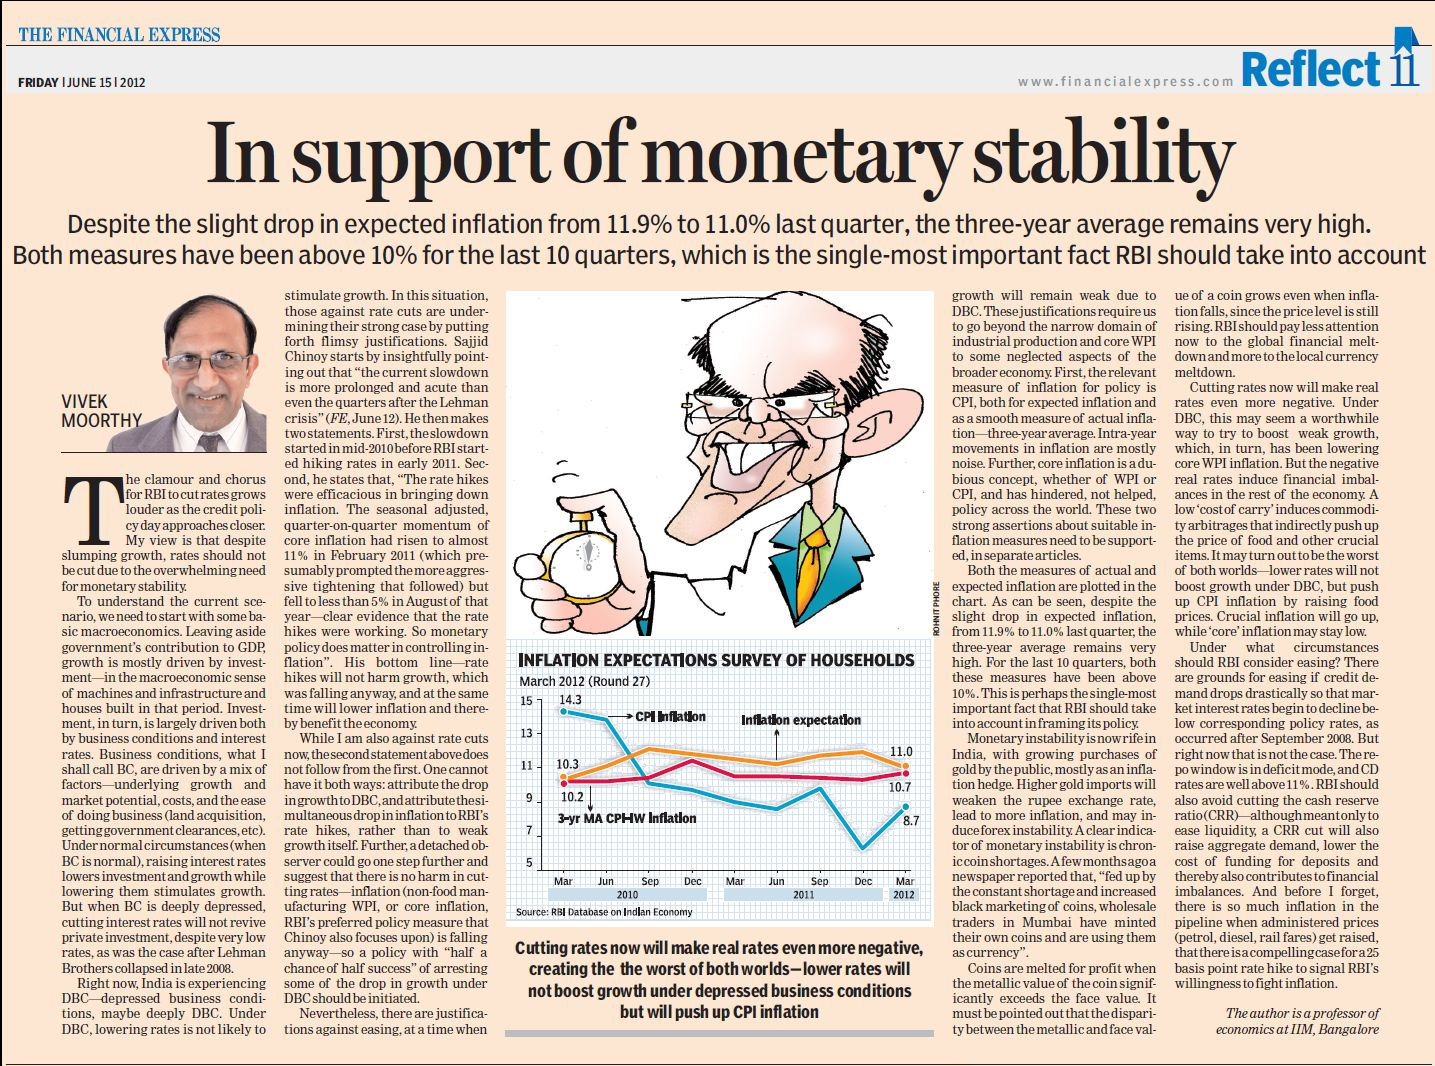 rbi monetary policy review of 2011 2013 Monetary policy is the process by which monetary authority of a country ,  generally central bank controls the supply of money in the economy by its control  over interest rates in order to maintain price stability and achieve high economic  growth in india, the central monetary authority is the reserve bank of india (rbi)   crr graph from 1992 to 2011.